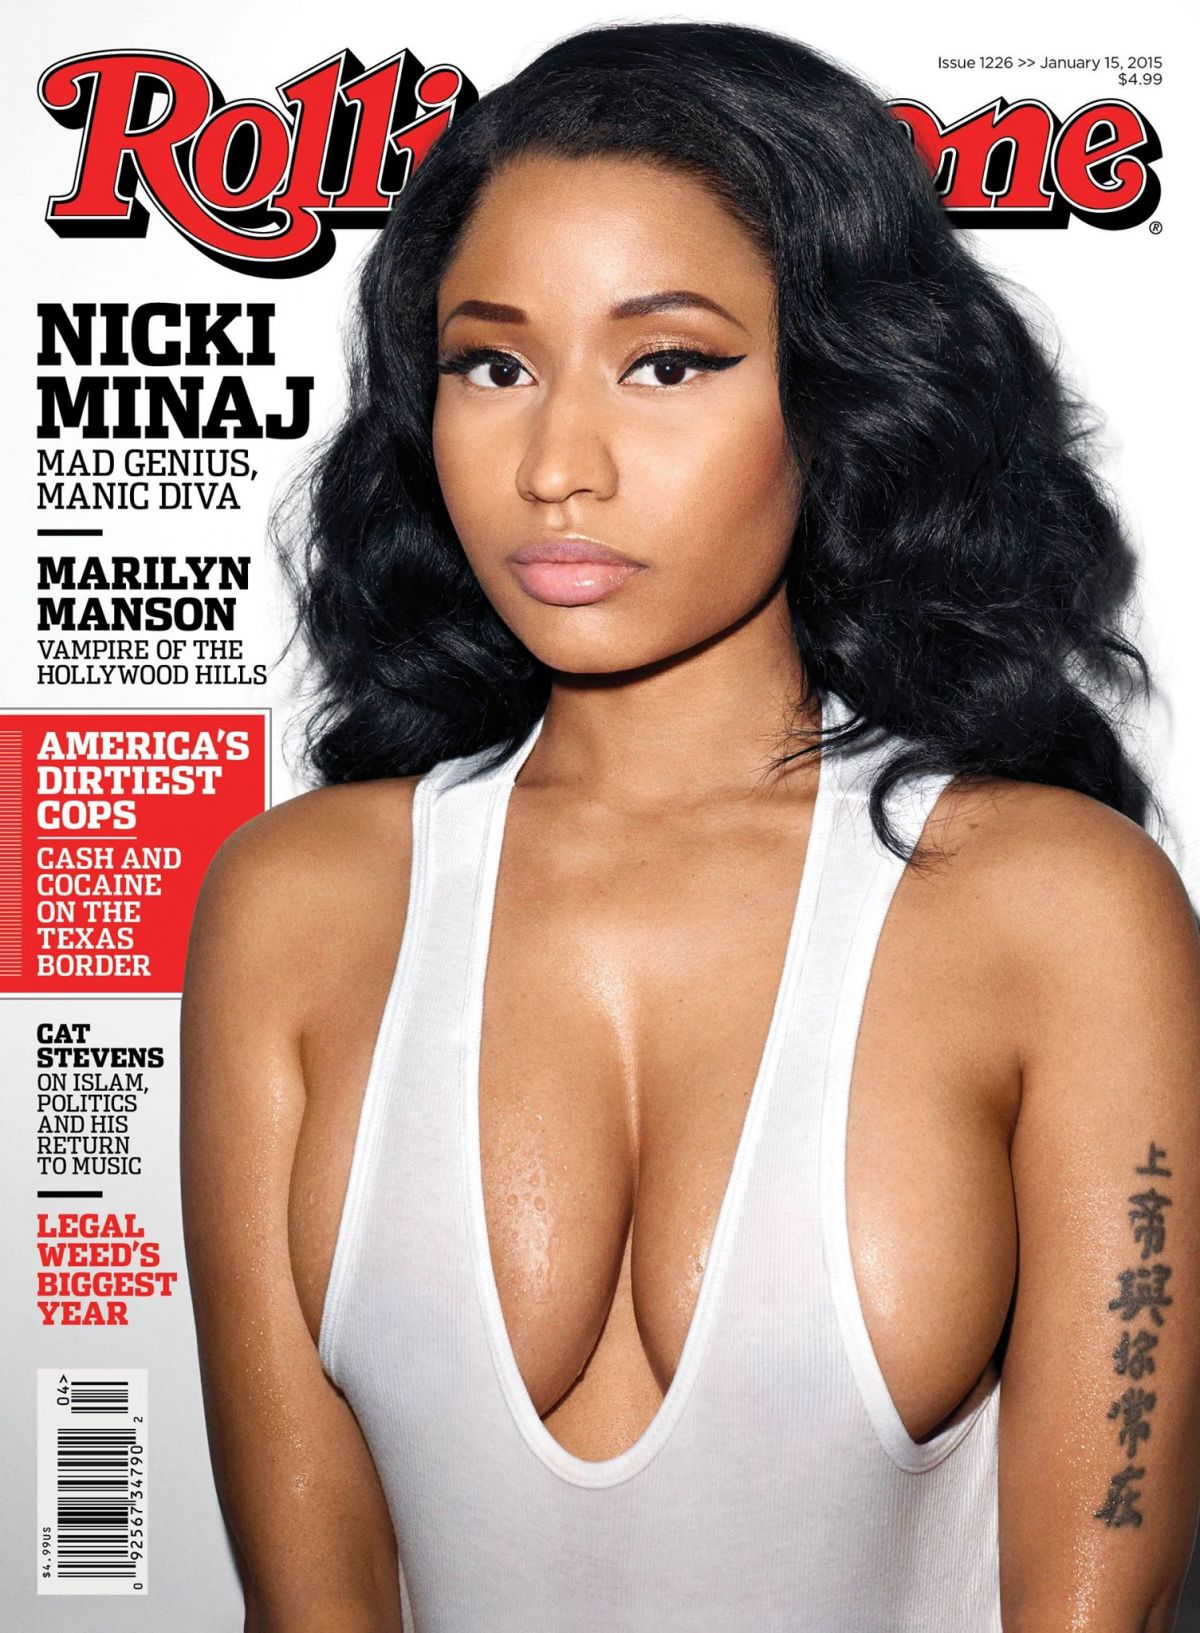 NICKI MINAJ on the Cover of Rolling Stone Magazine, January 2015 Issue